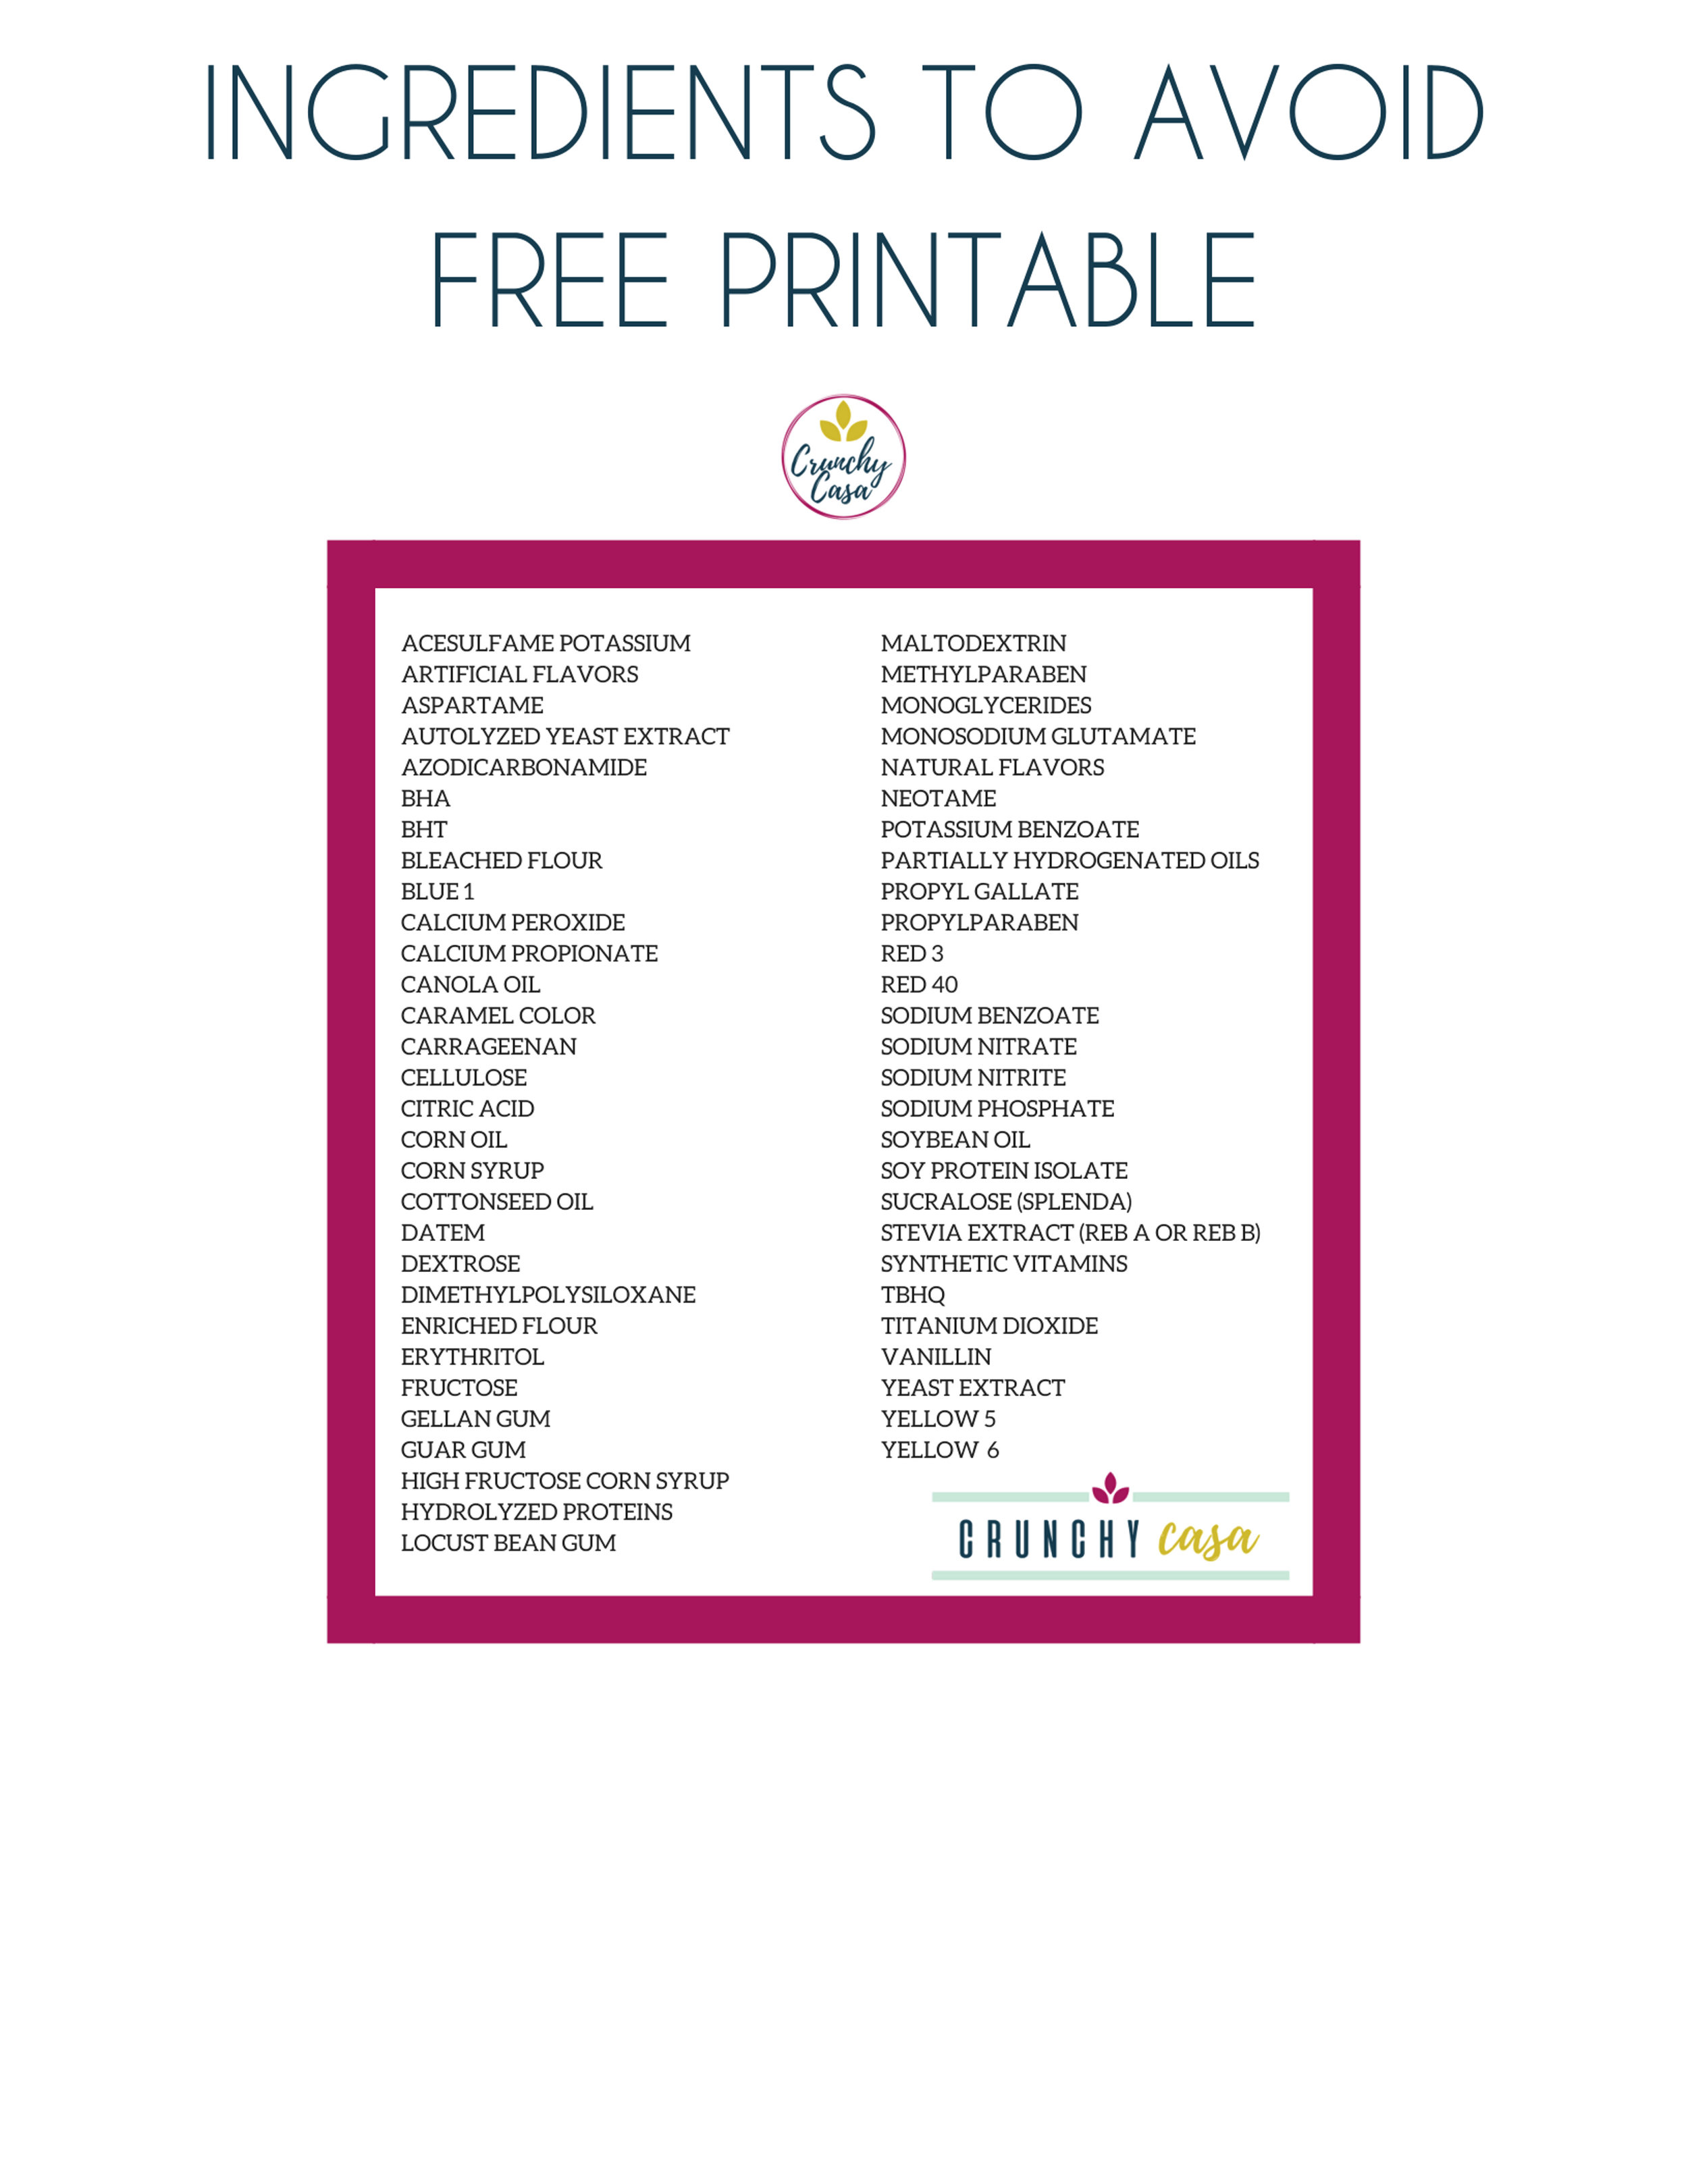 INGREDIENTS TO AVOID - Bring this list with you to the store!